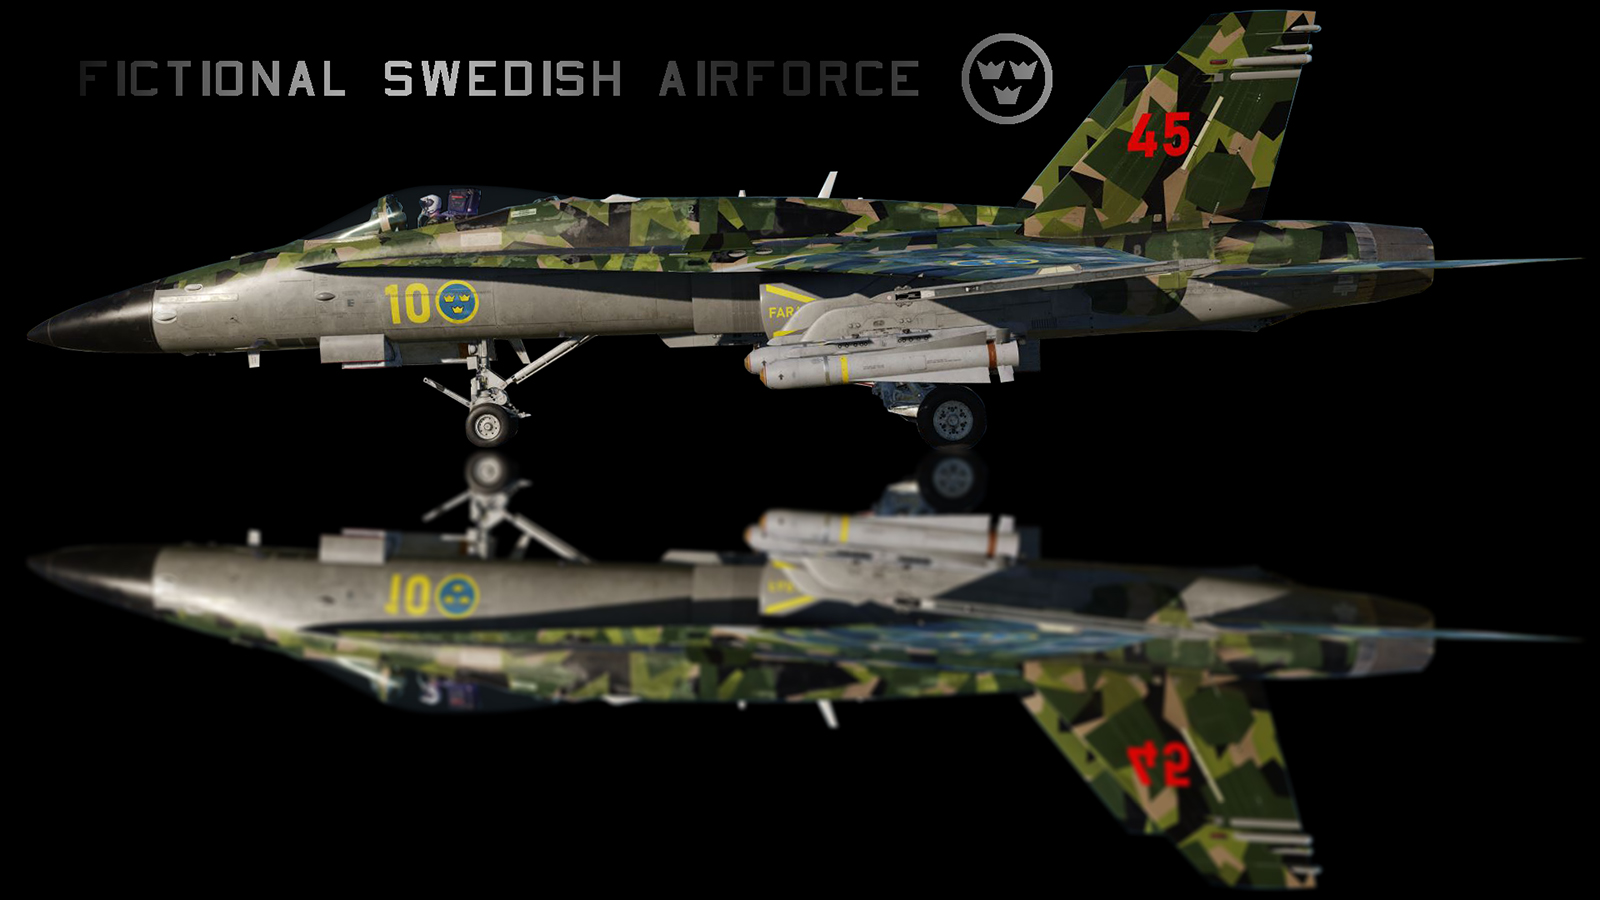 Swedish Air force (fictional skin)